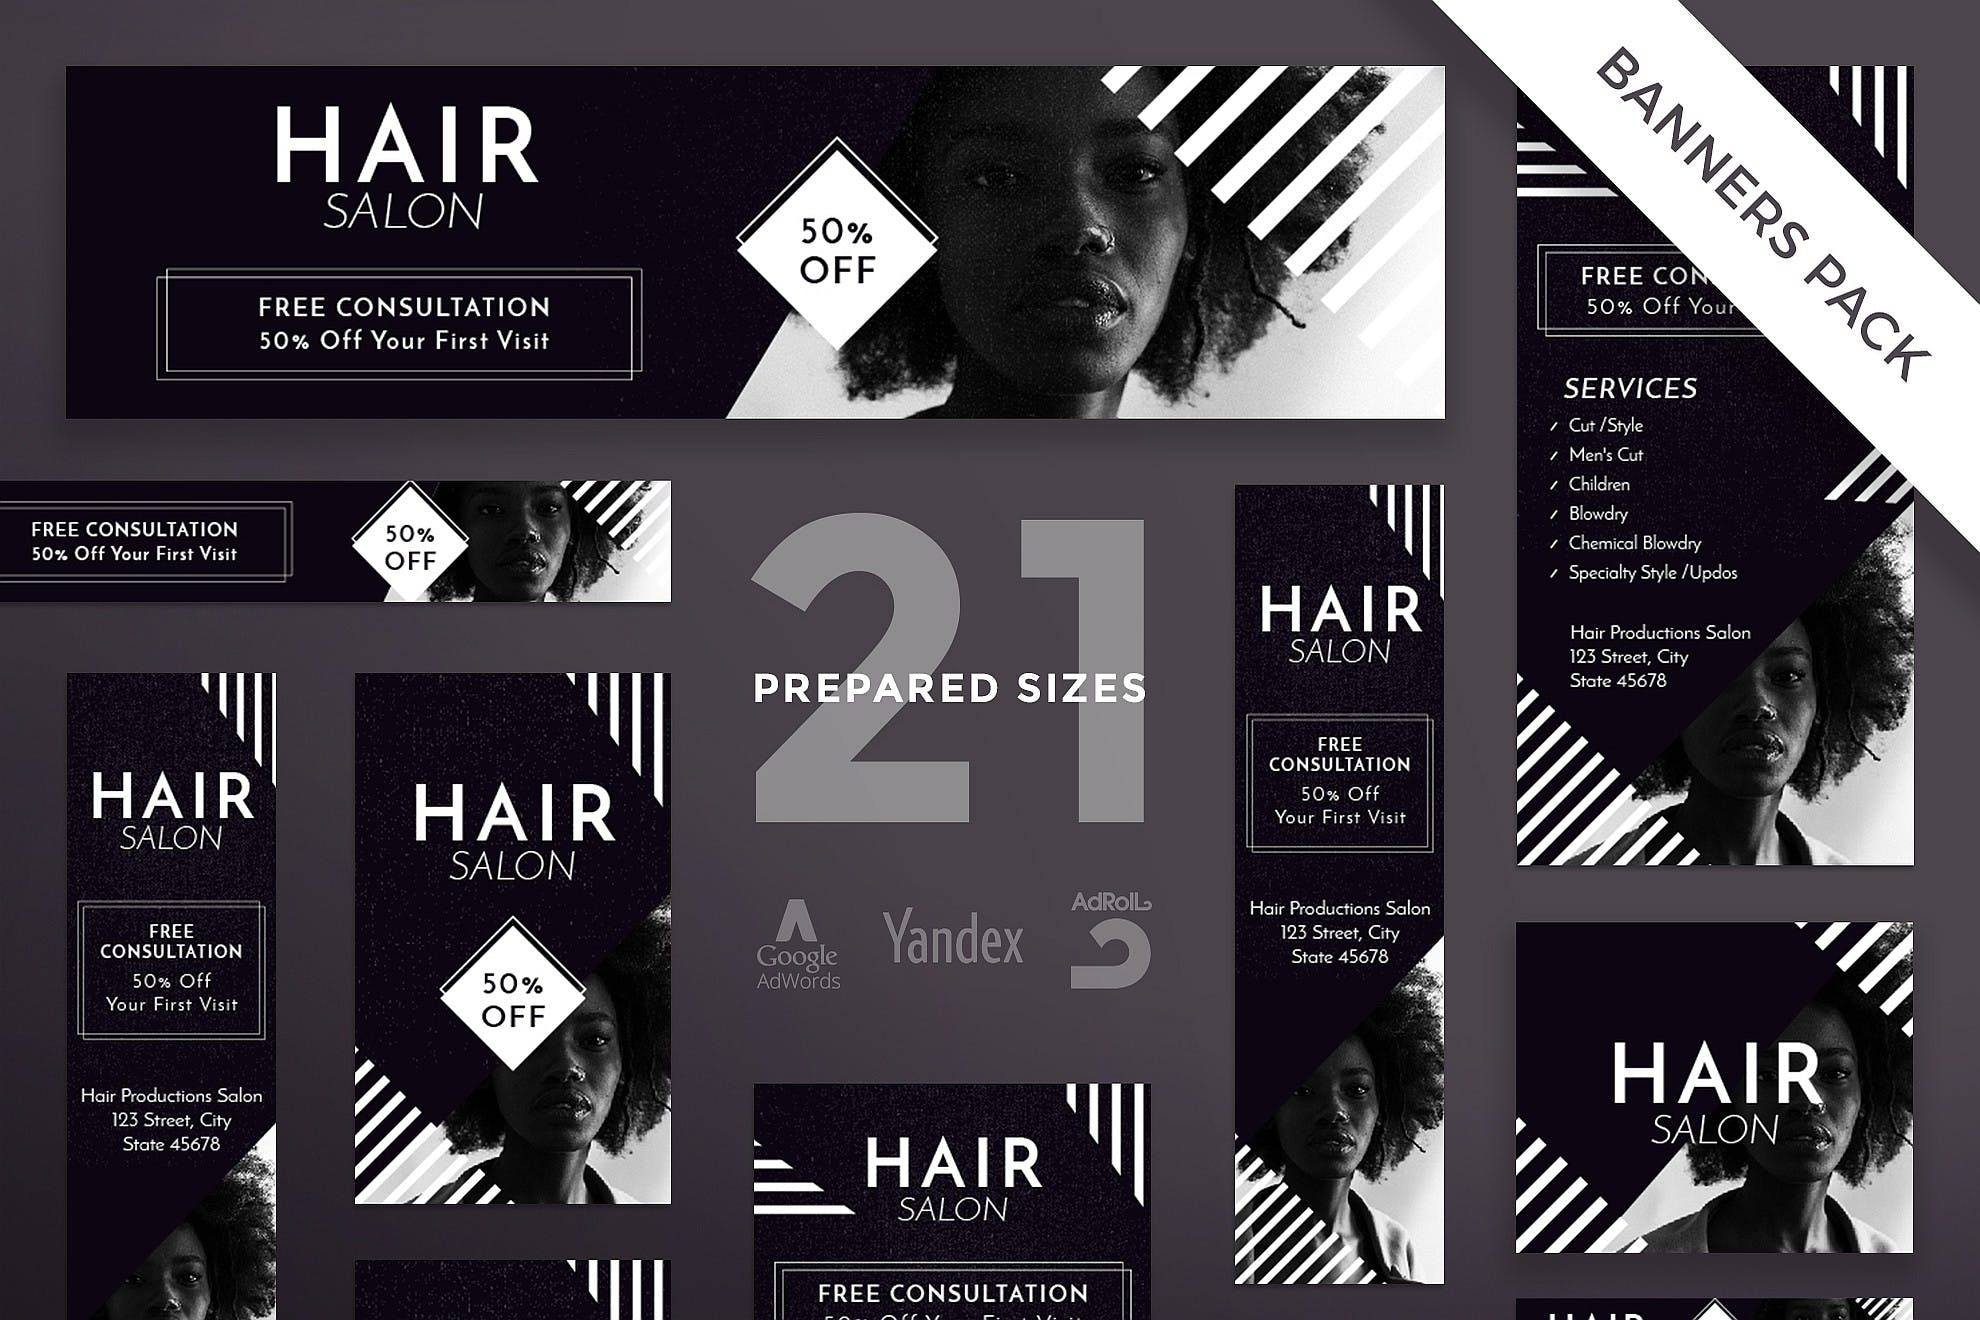 Hair Salon Banner Pack Template By Ambergraphics On Envato Elements